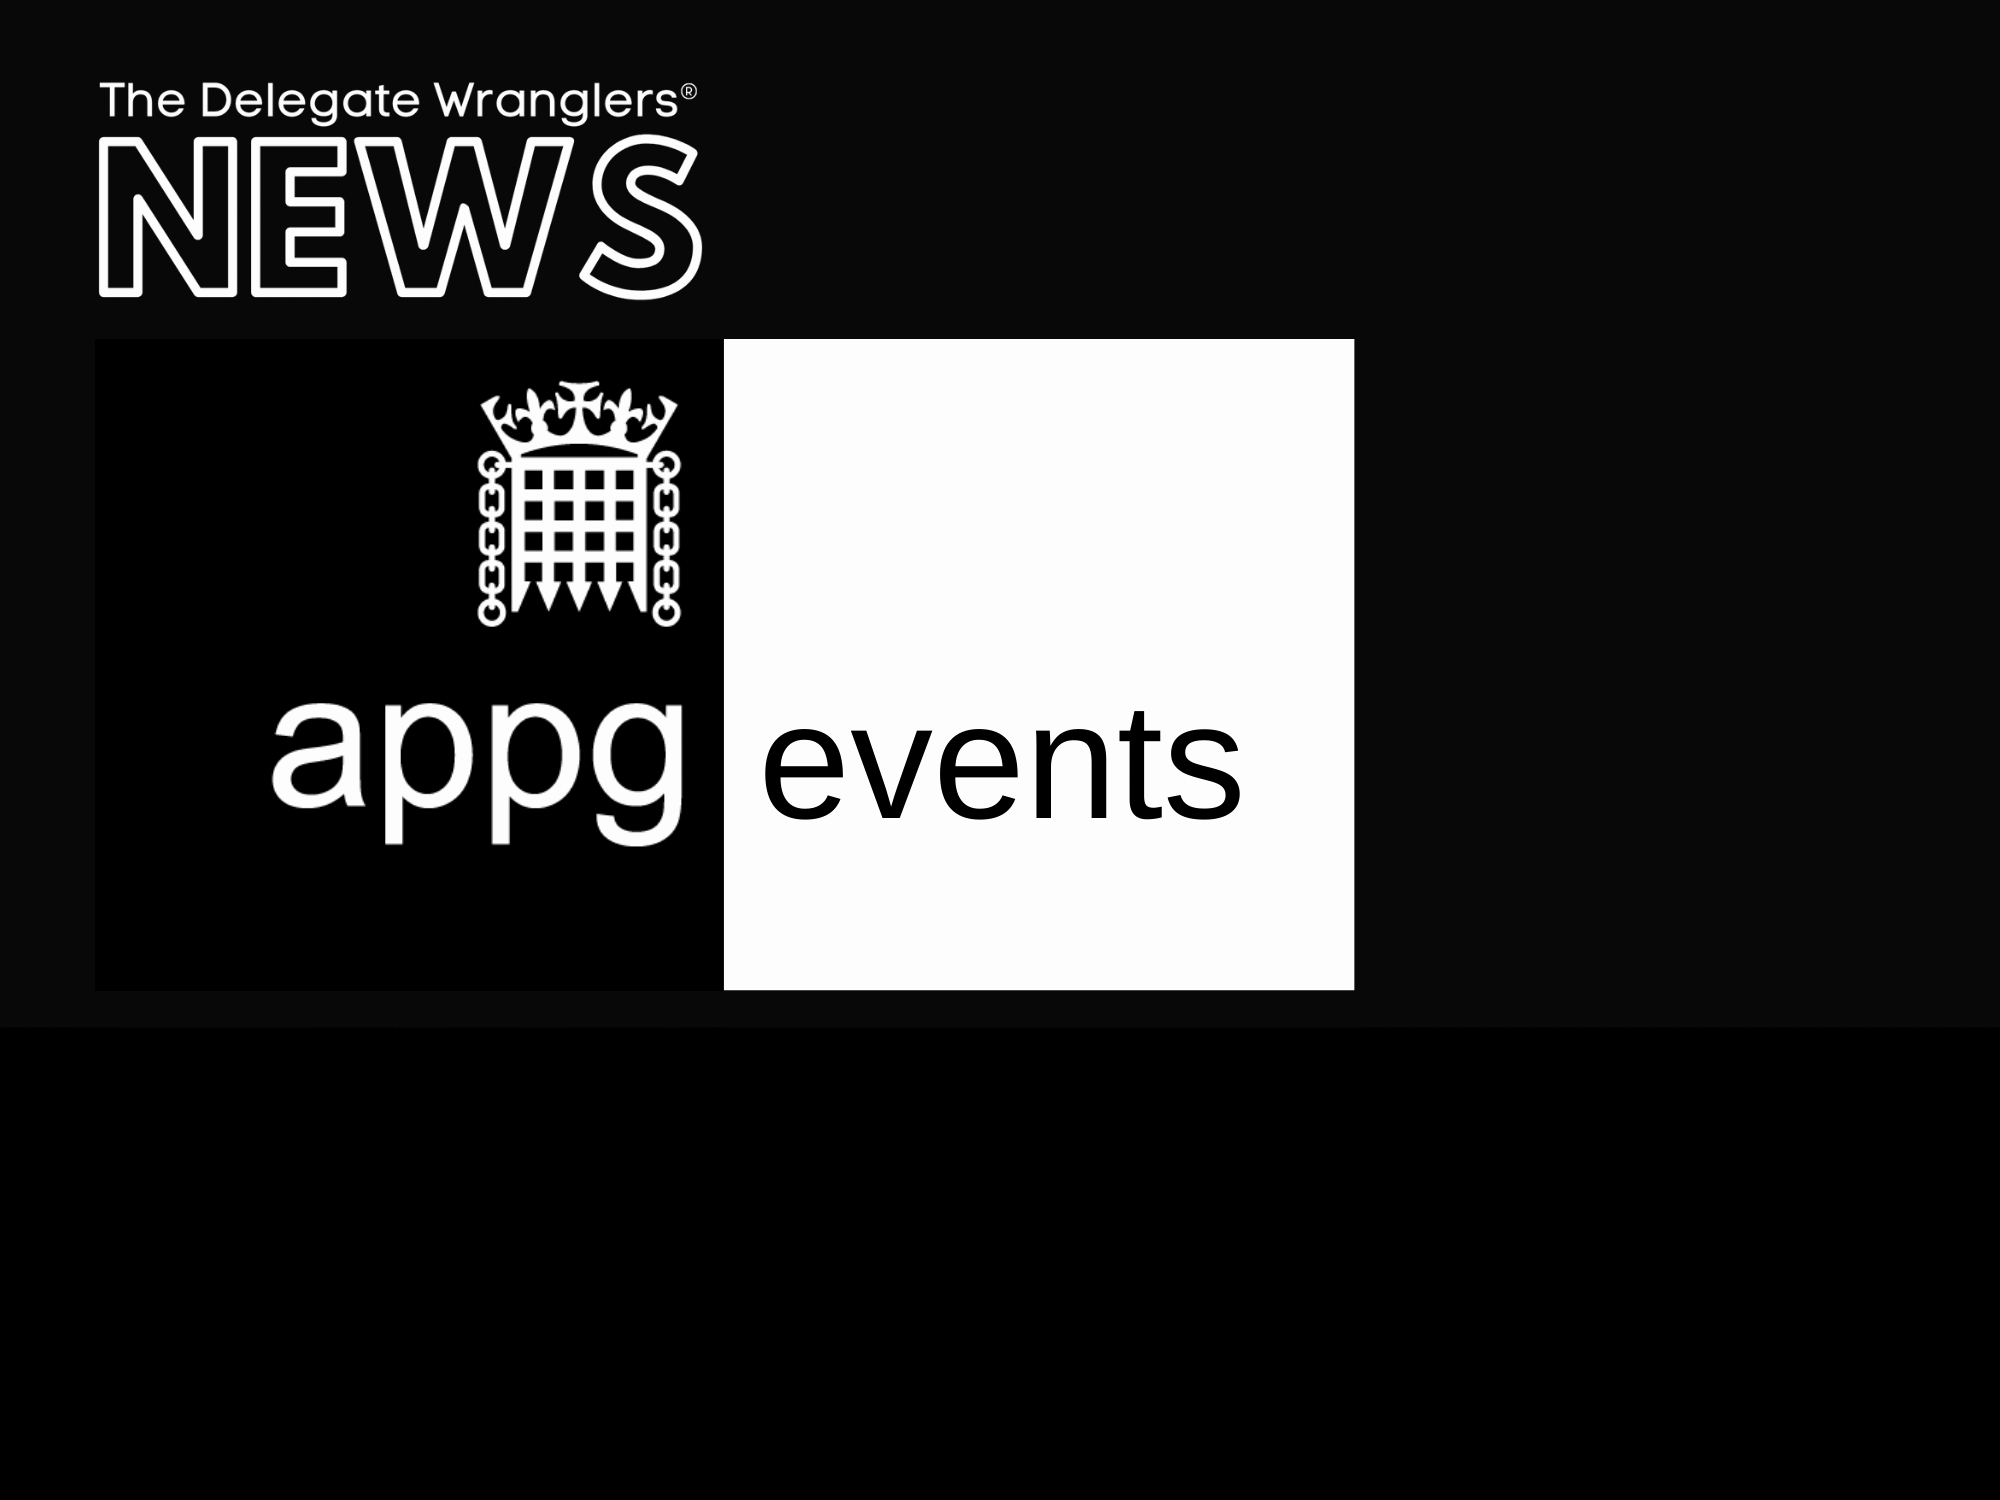 The All Party Parliamentary Group for Events (APPG) holds inaugural meeting